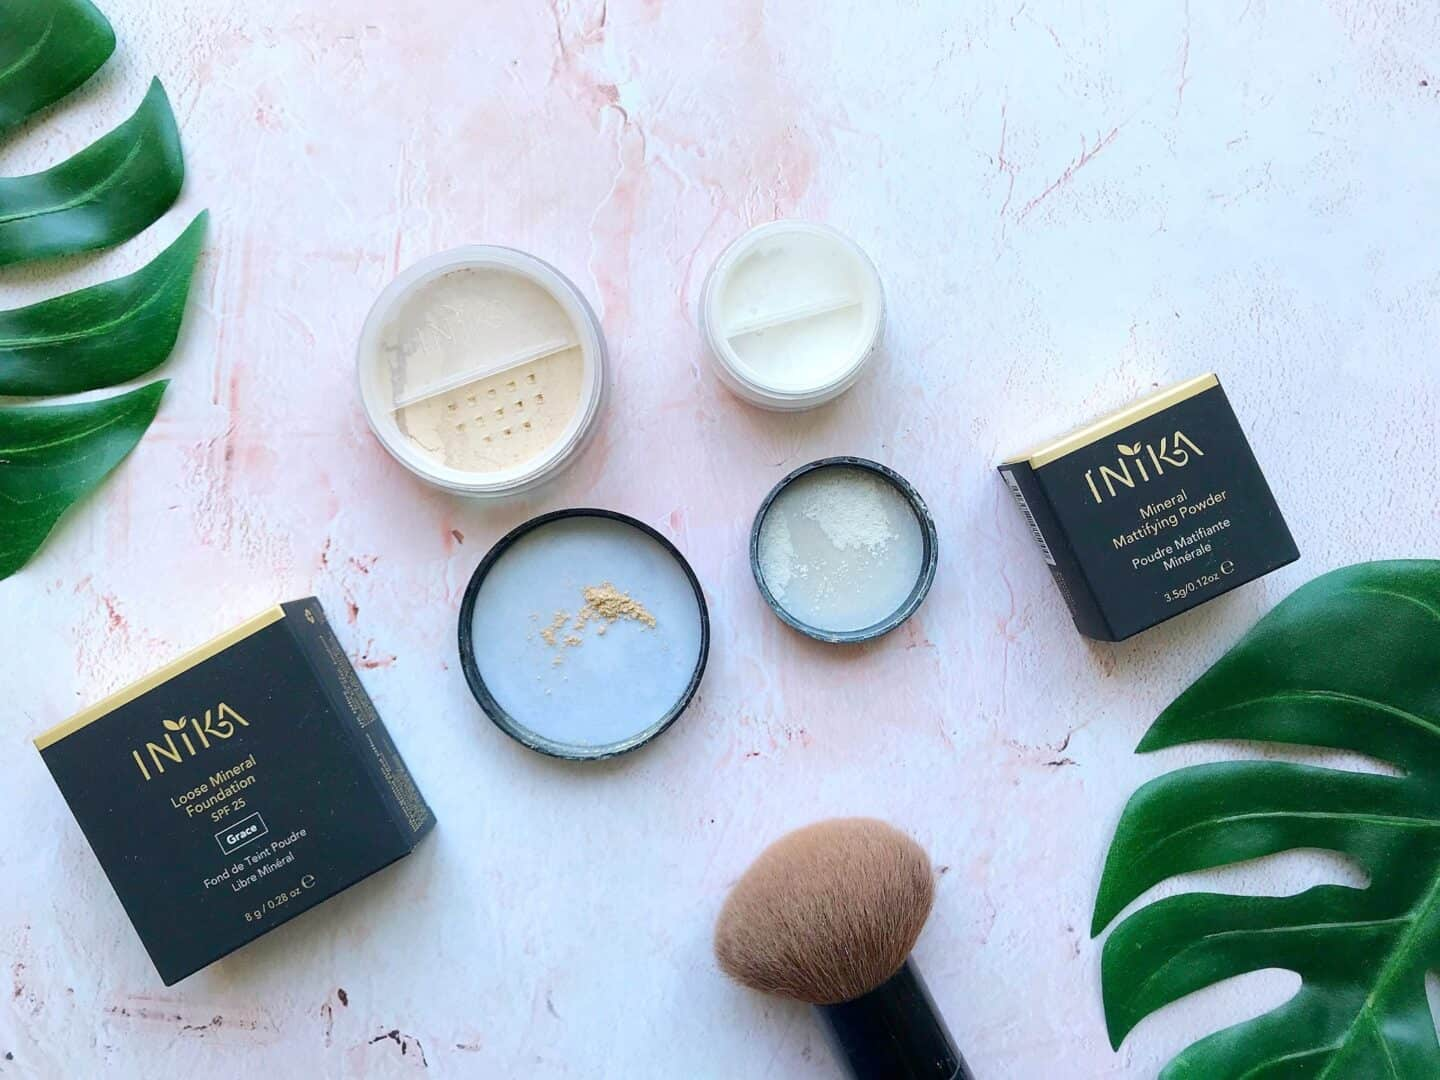 Complexion Perfection with Inika Loose Mineral Foundation and Mineral Mattifying Powder